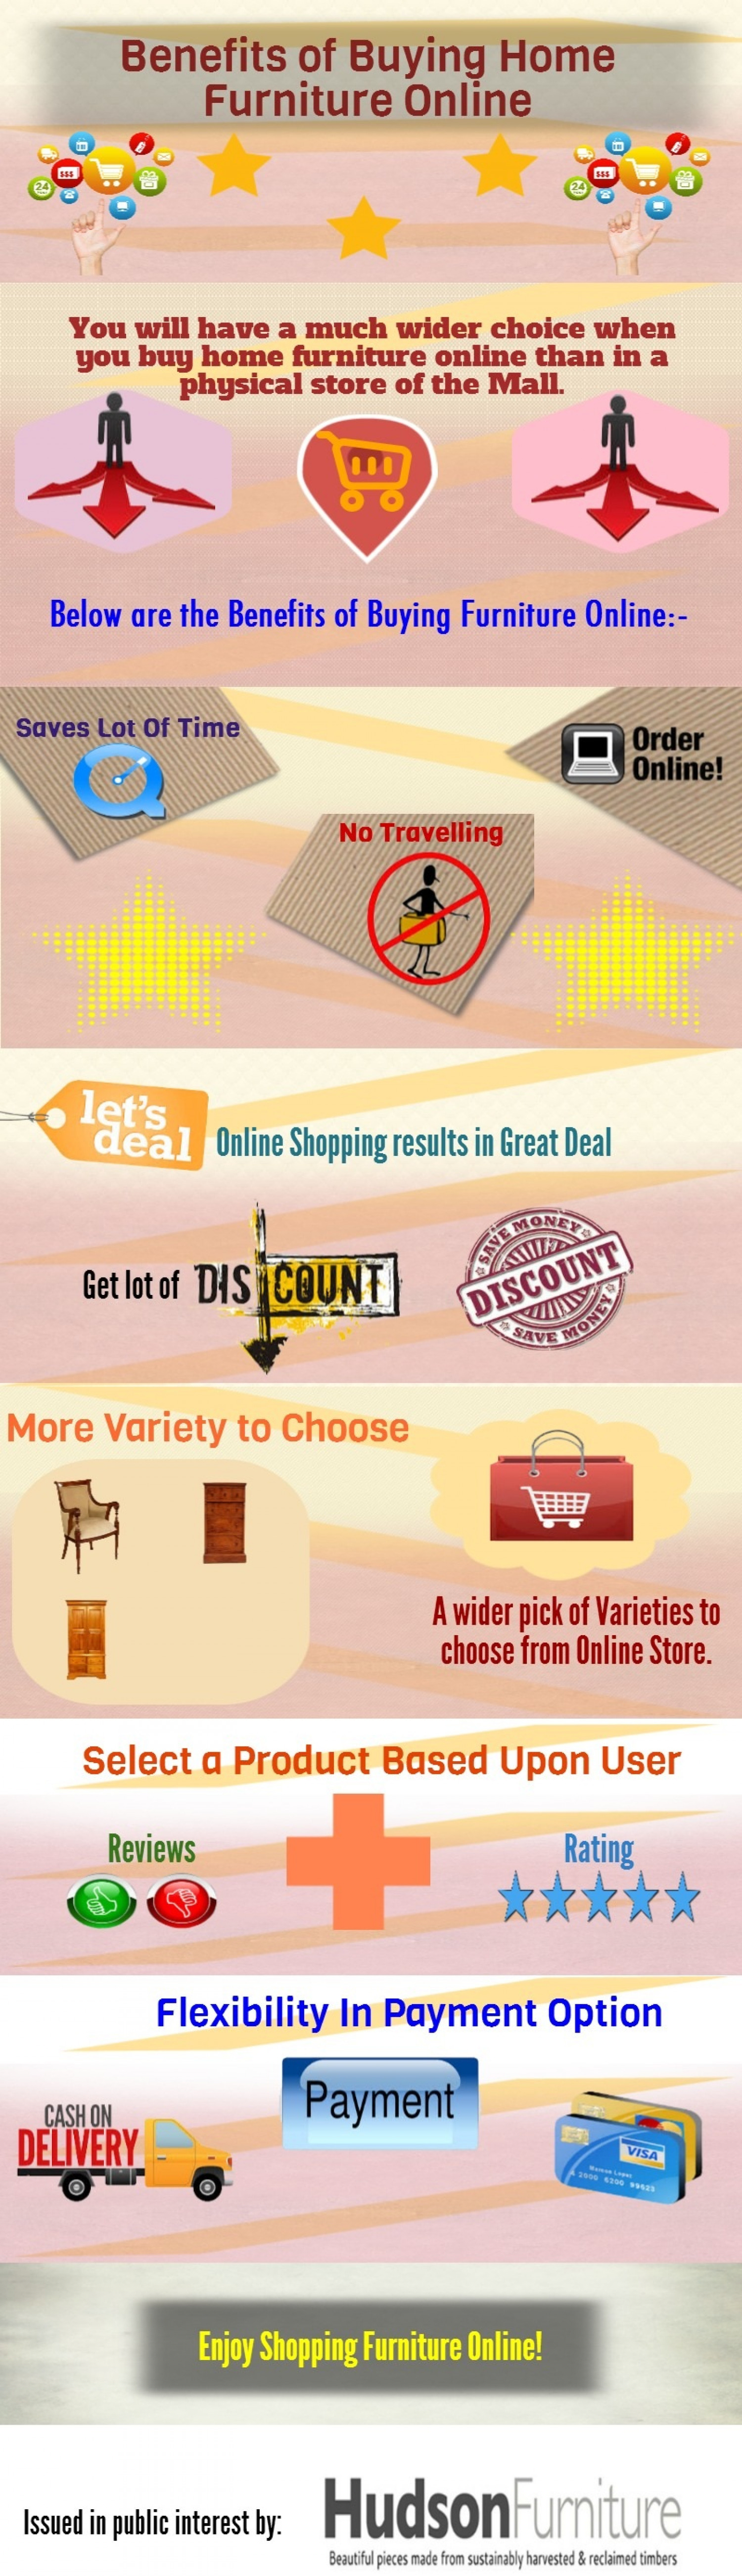 Benefits of Buying Home Furniture Online Infographic